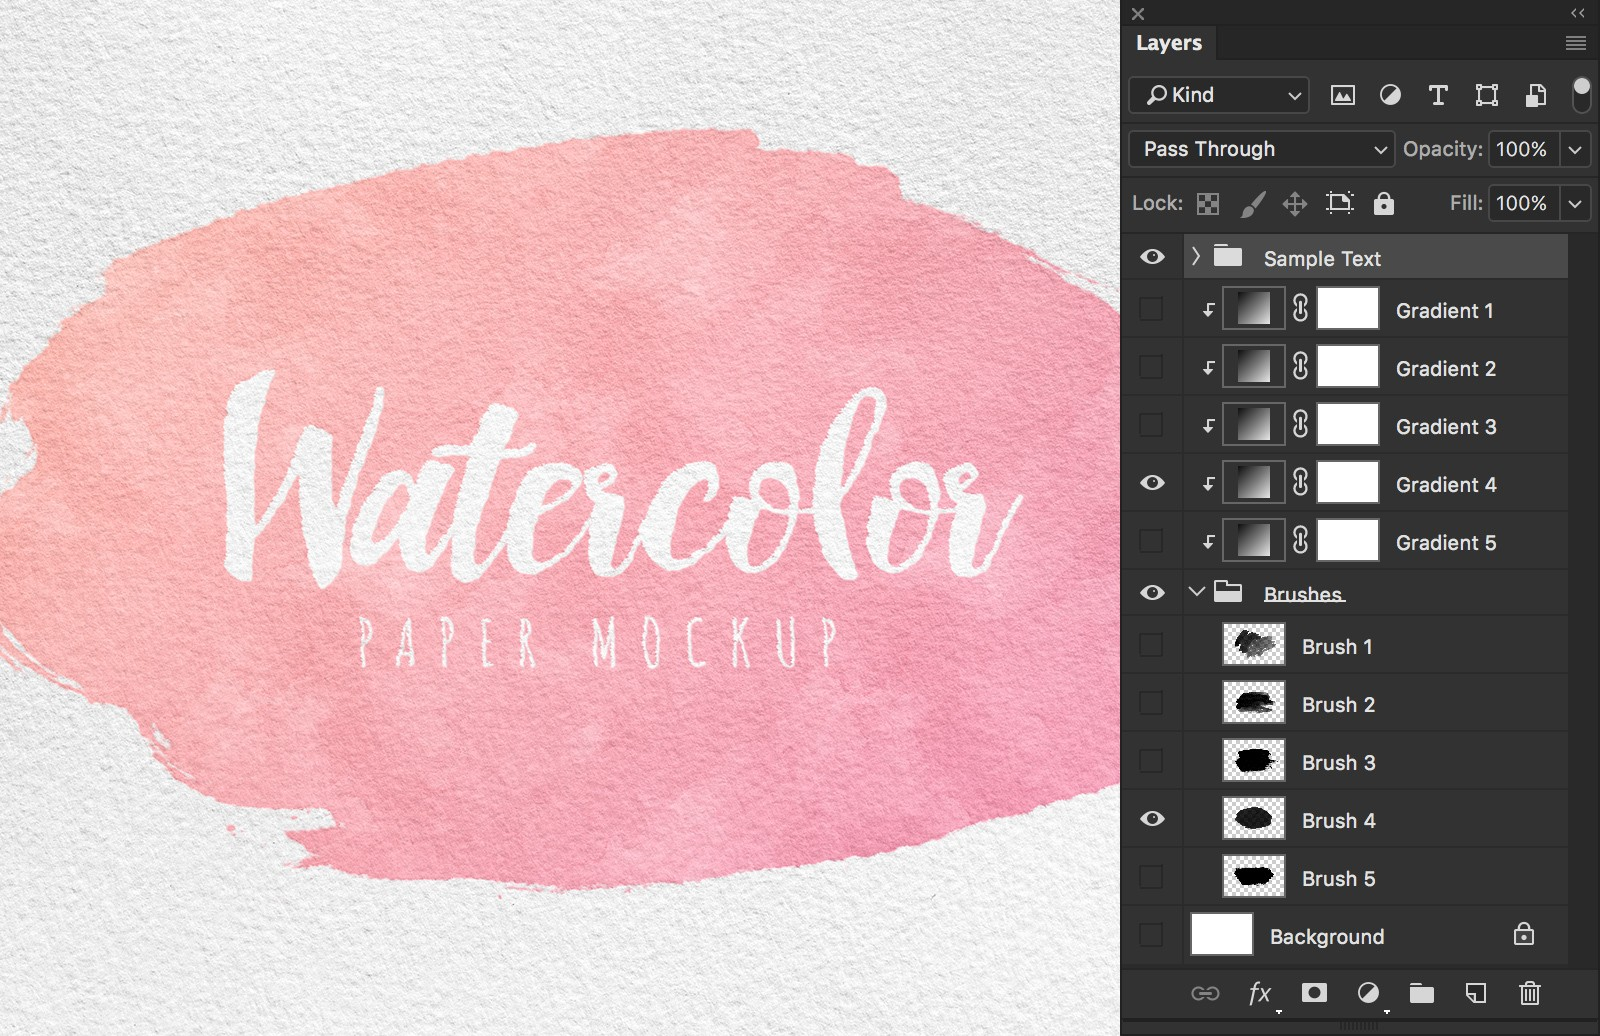 Large Watercolor Paper Mockup Preview 4